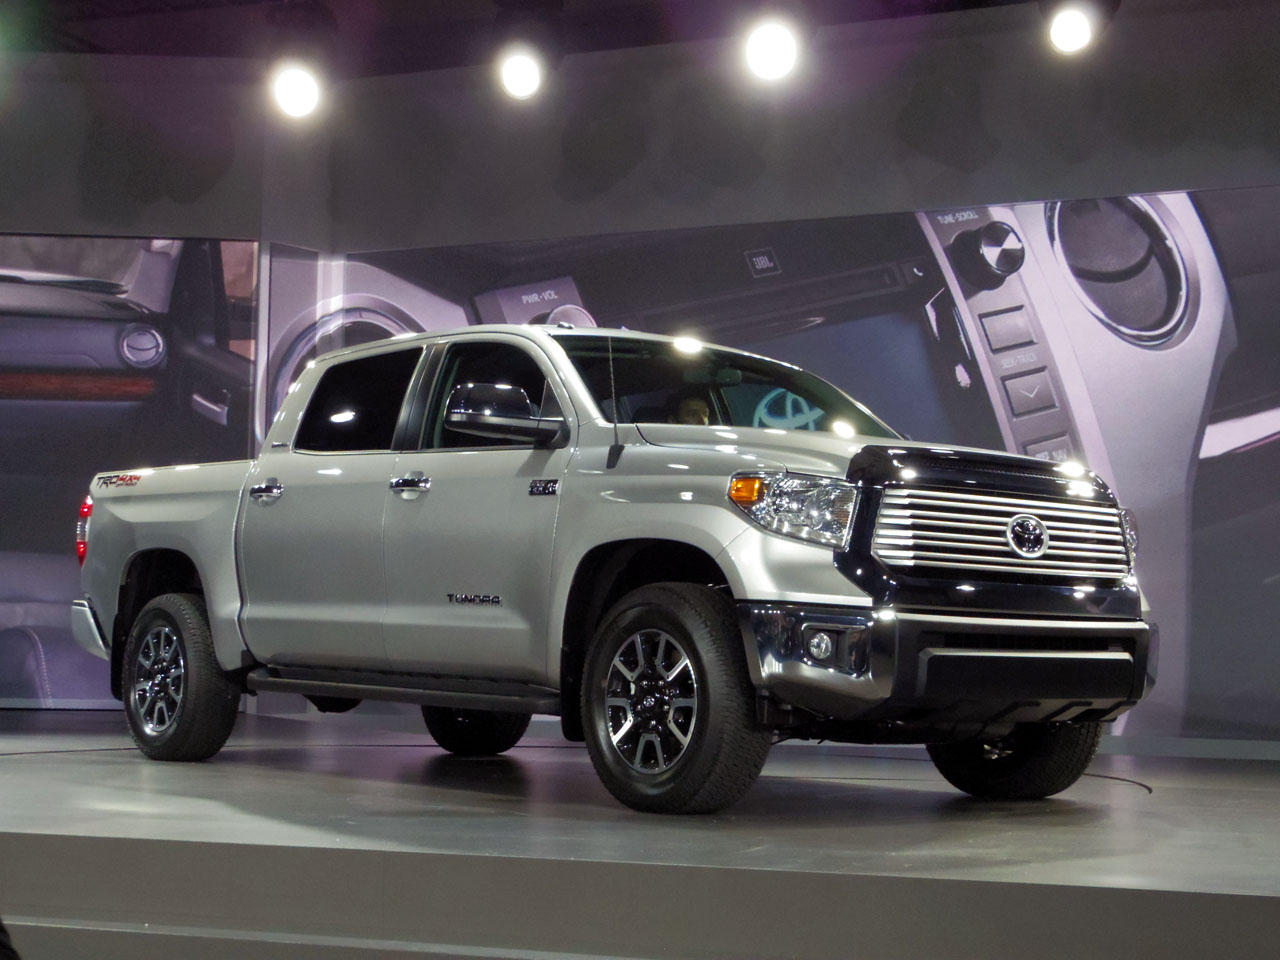 ����� <strong>Toyota Tundra</strong> ������������ � ������